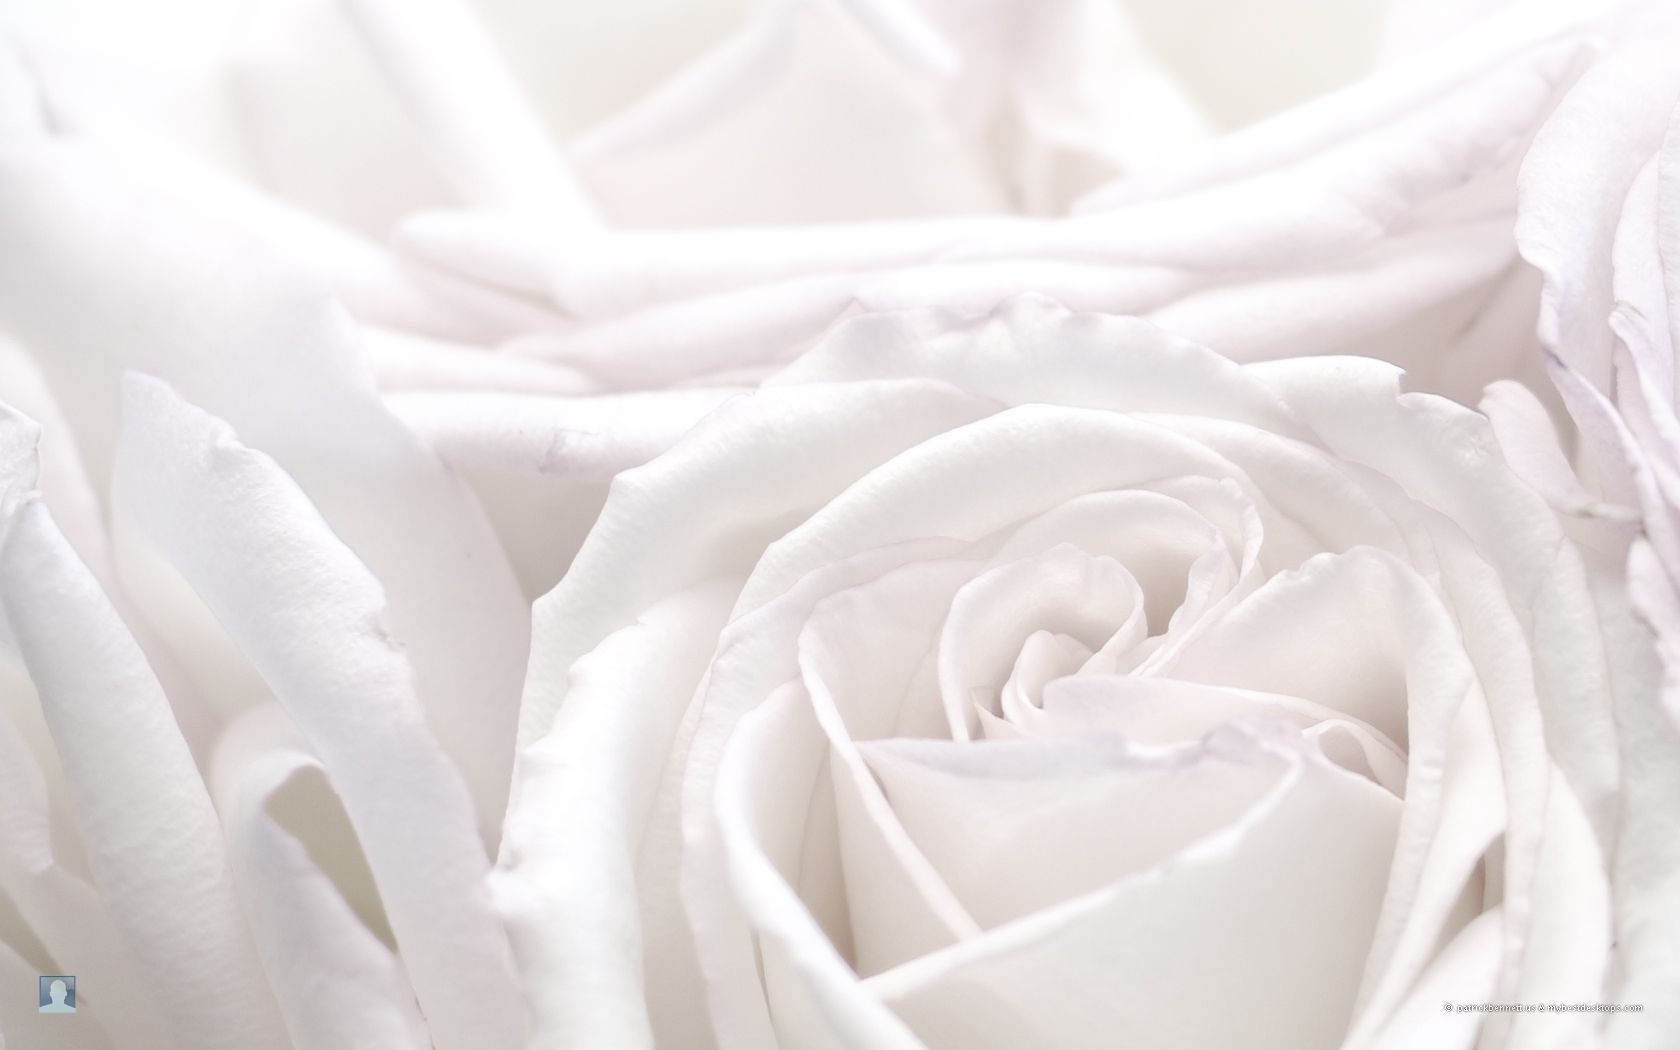 White rose hd photos flowers wallpapers collections free download white rose hd photos flowers wallpapers collections free download 16801050 white rose wallpaper 54 wallpapers adorable wallpapers mightylinksfo